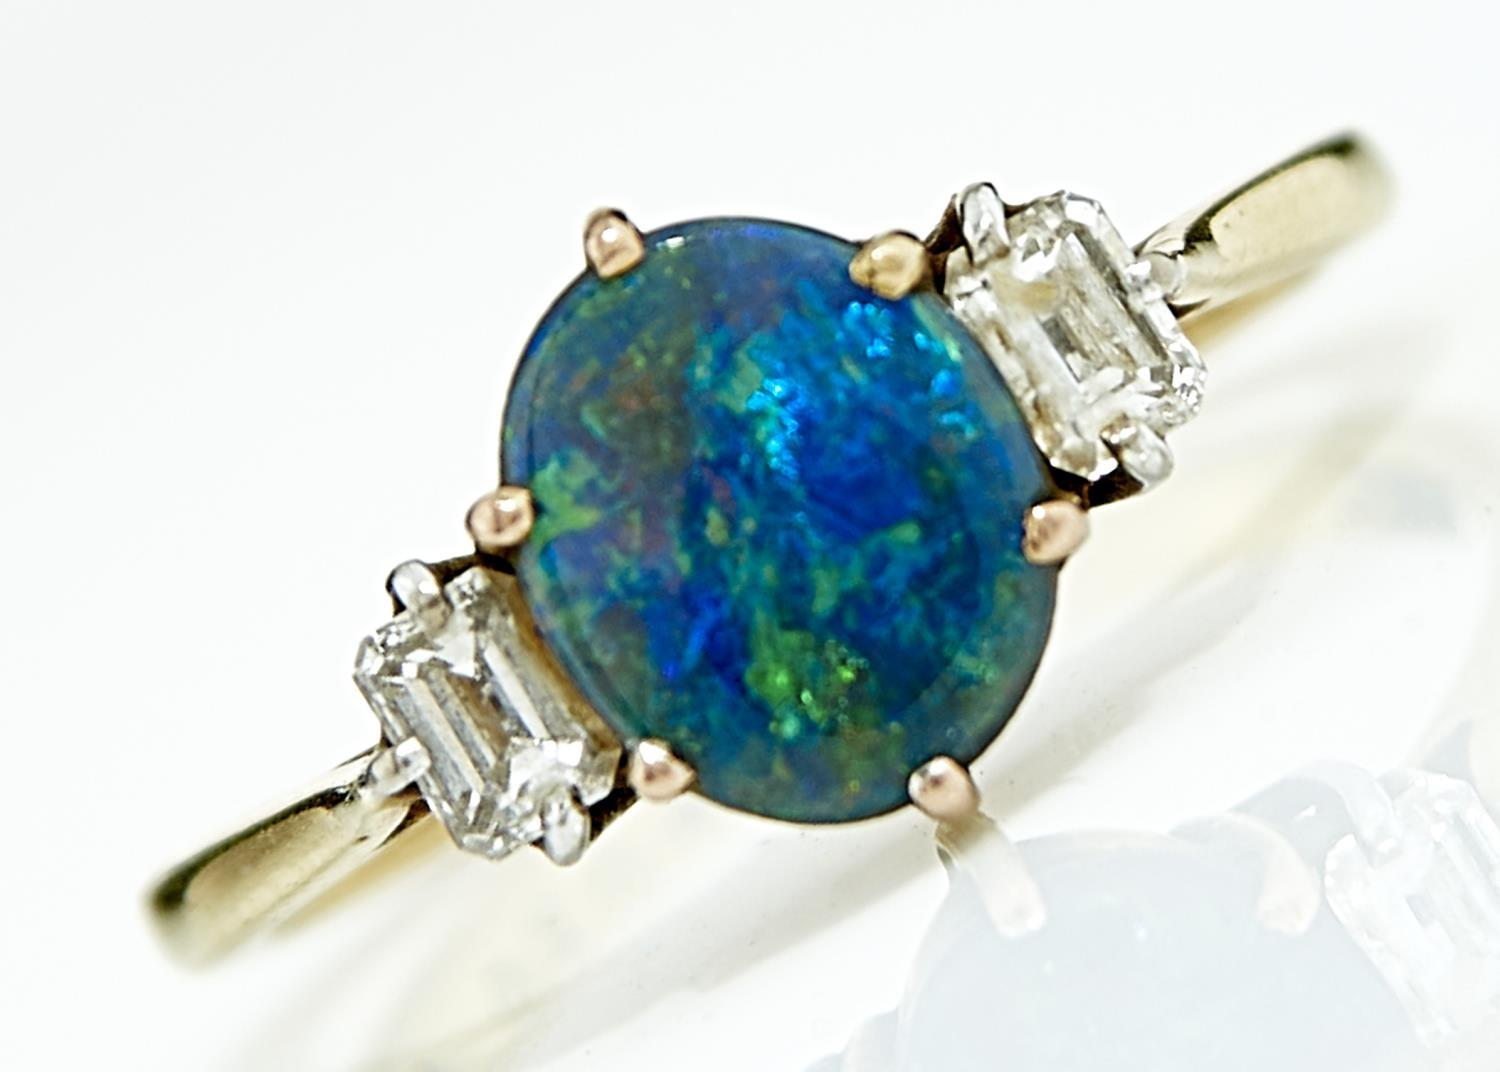 A BLACK OPAL AND DIAMOND RING. THE BLACK OPAL OF APPROX 7 X 9MM FLANKED BY BAGUETTE DAIMONDS IN 18CT